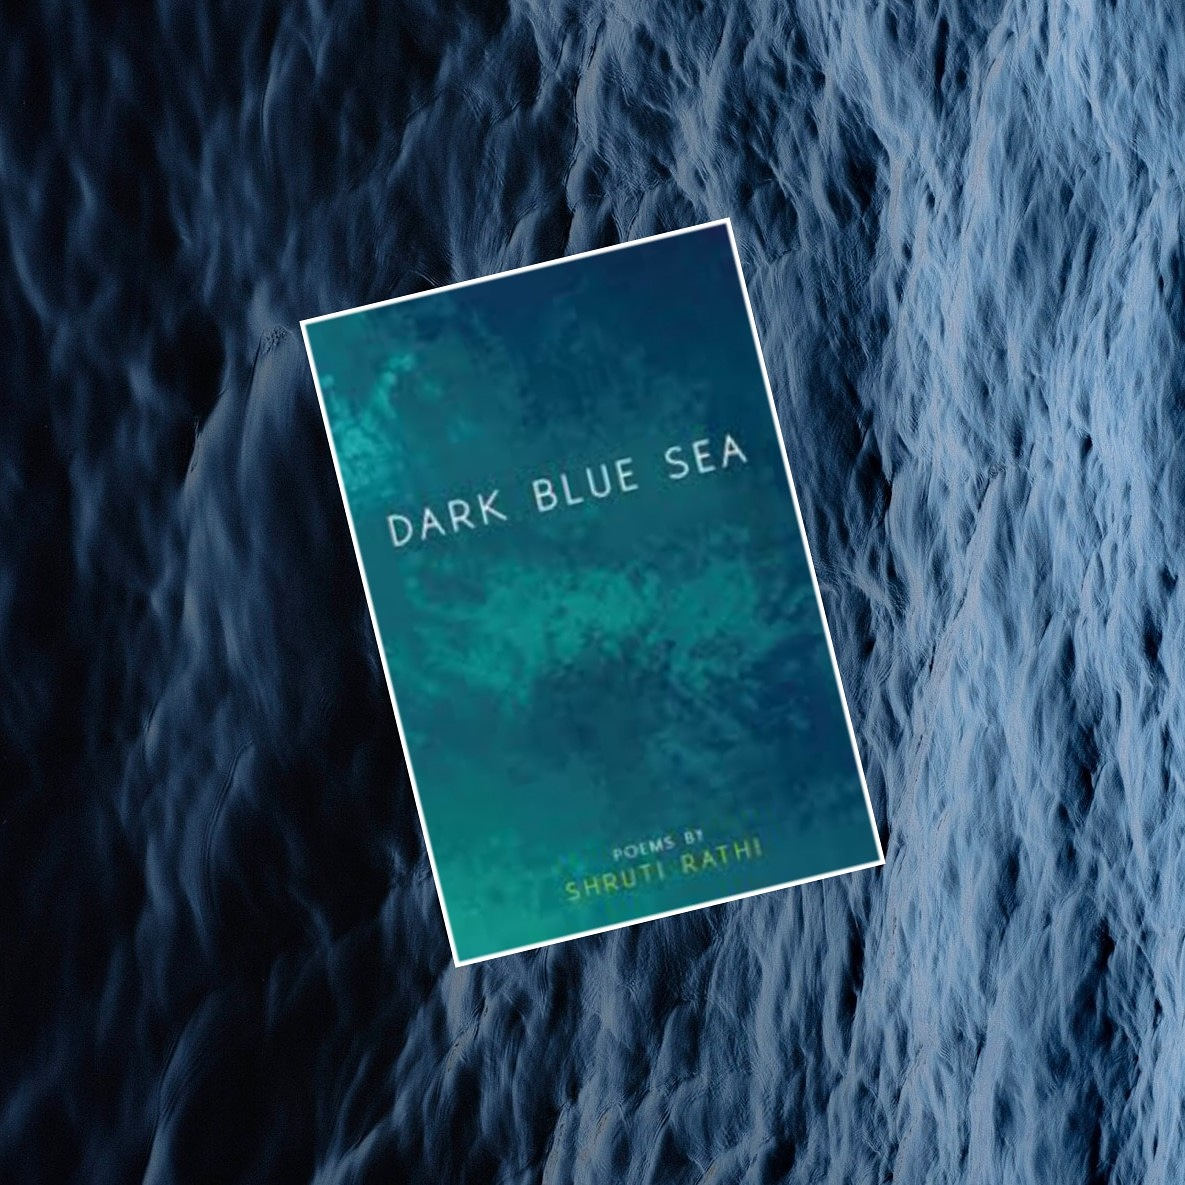 Dark Blue Sea